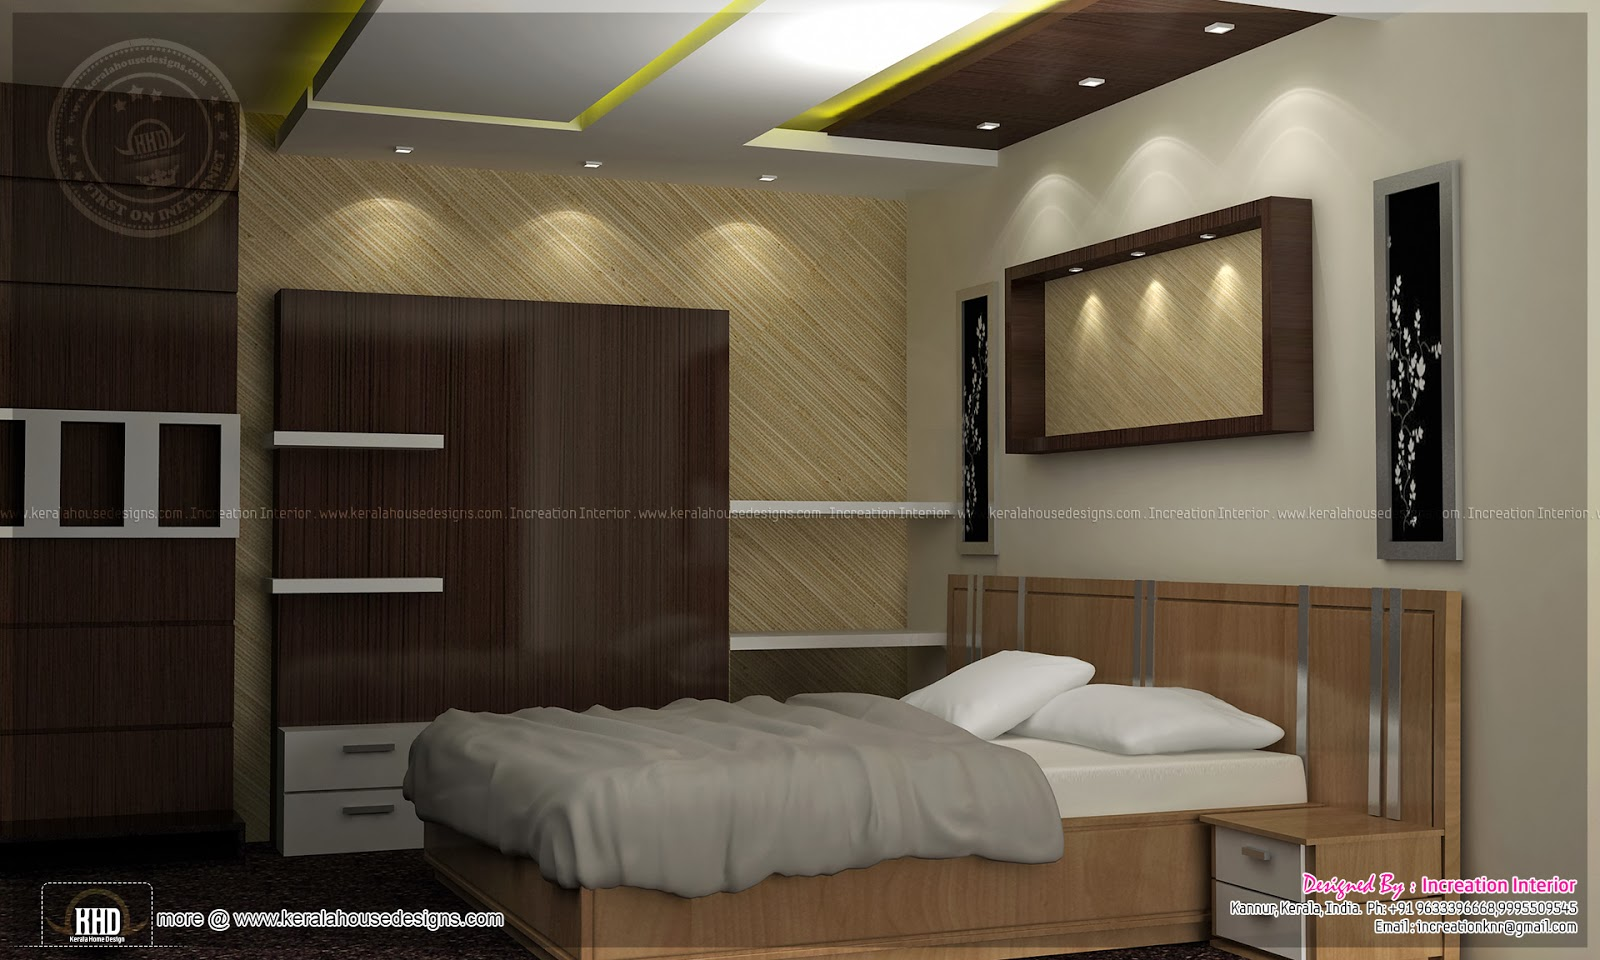 Bedroom interior designs indian house plans for Modern house interior design bedroom